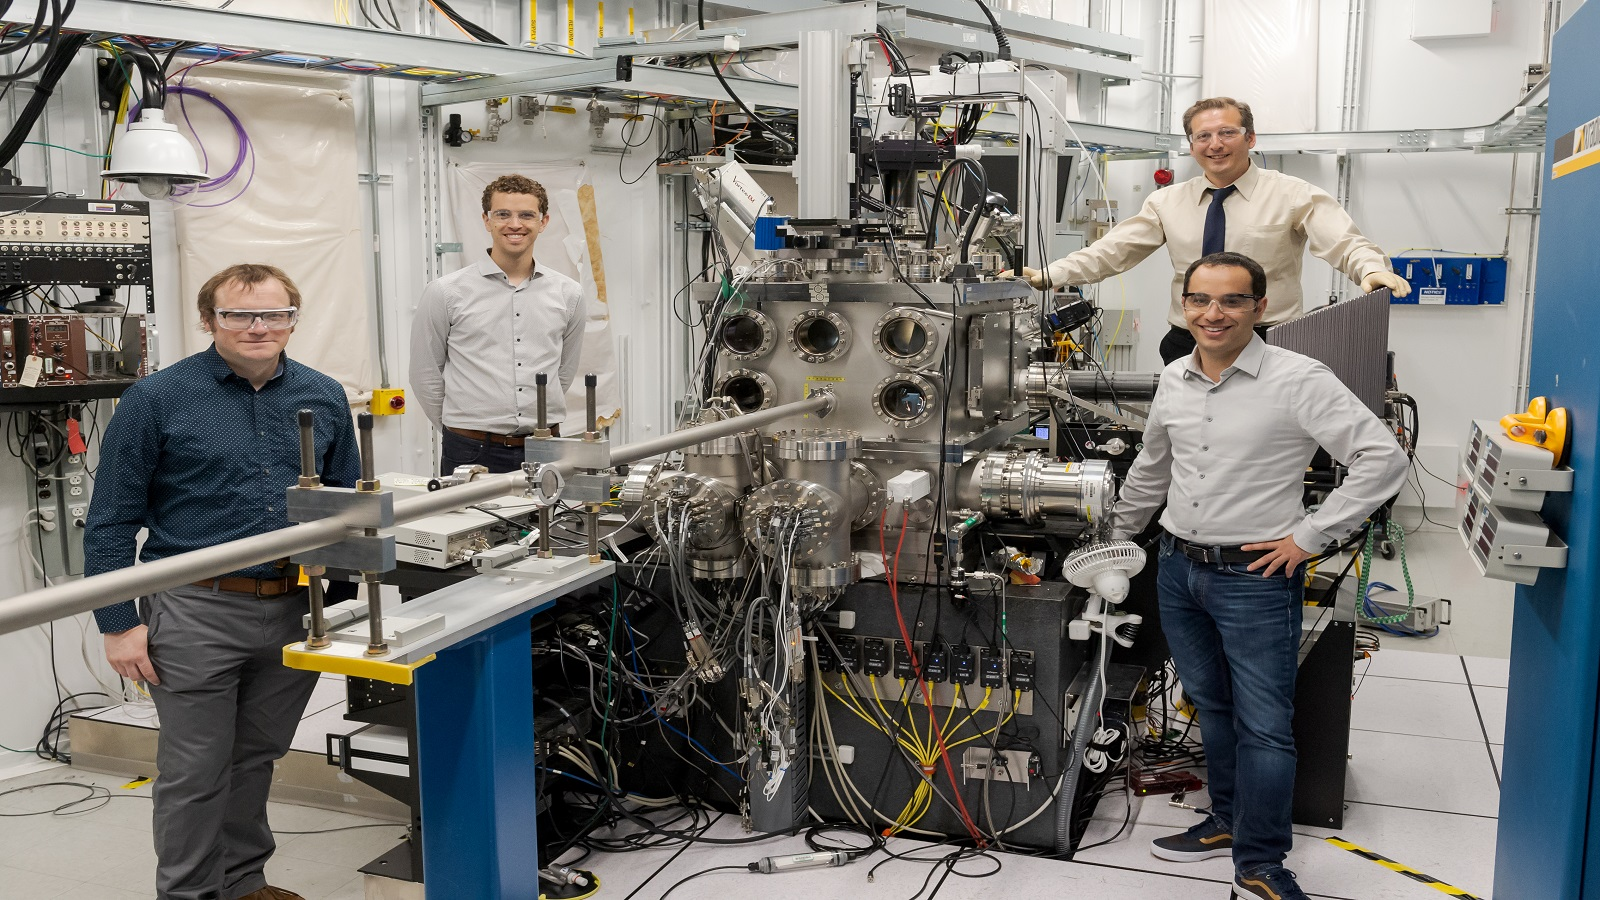 Argonne and University of Chicago scientists Joseph Heremans, Samuel Whiteley, Martin Holt, and Gary Wolfowicz stand by Argonne's Hard X-ray Nanoprobe beamline, which was used for a new technique called stroboscopic Bragg diffraction microscopy to image sound waves in a crystal.